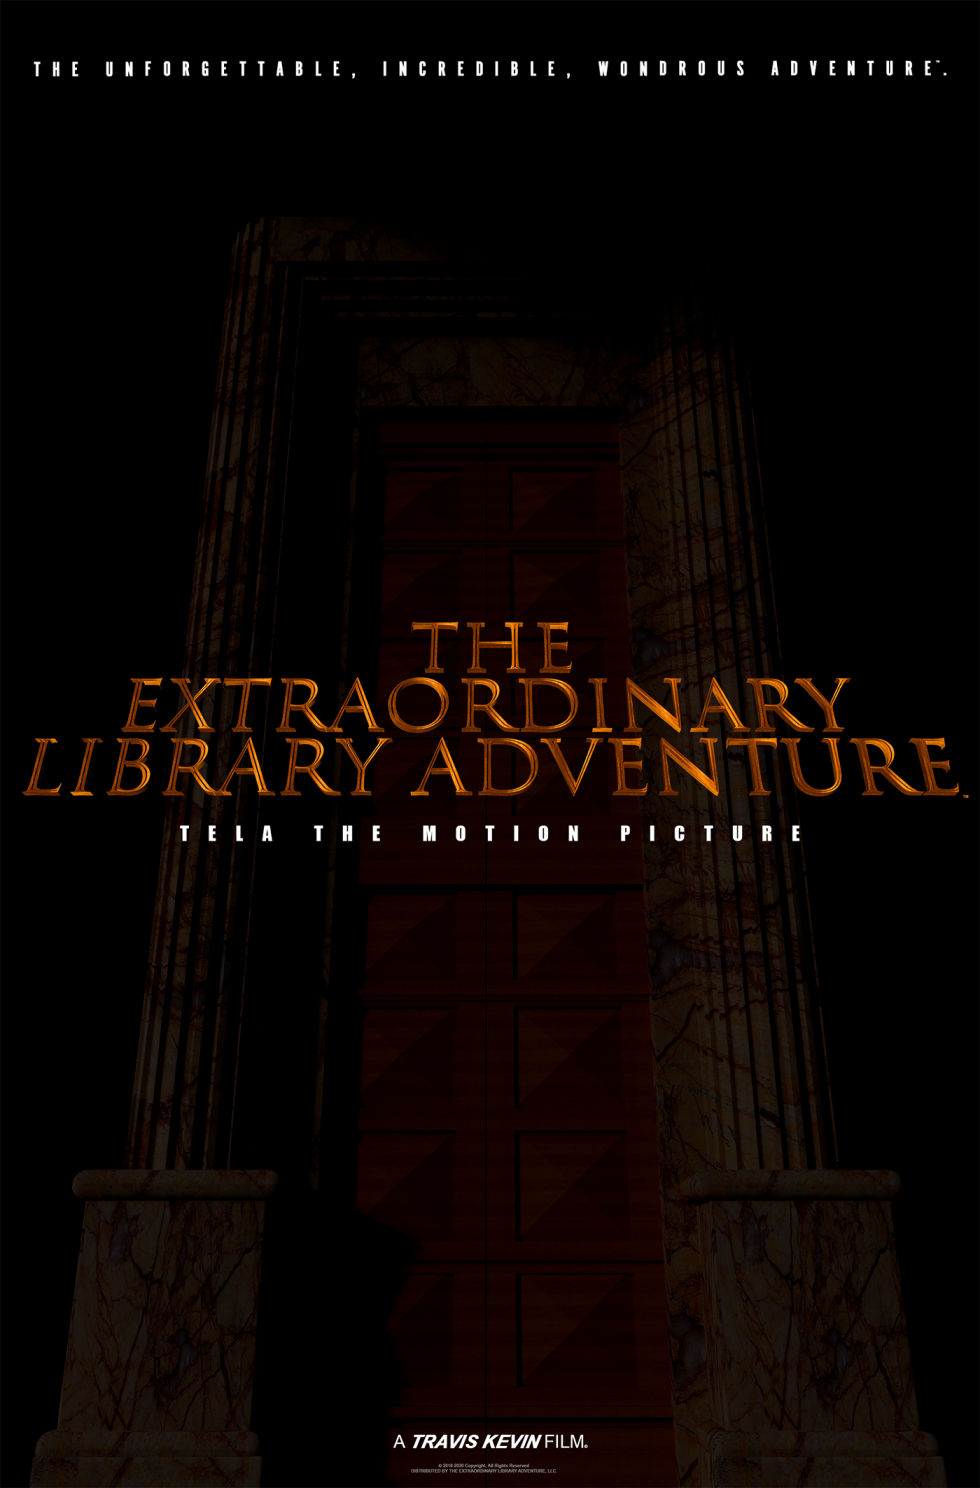 THE EXTRAORDINARY LIBRARY ADVENTURE™. Theatrical Movie Poster